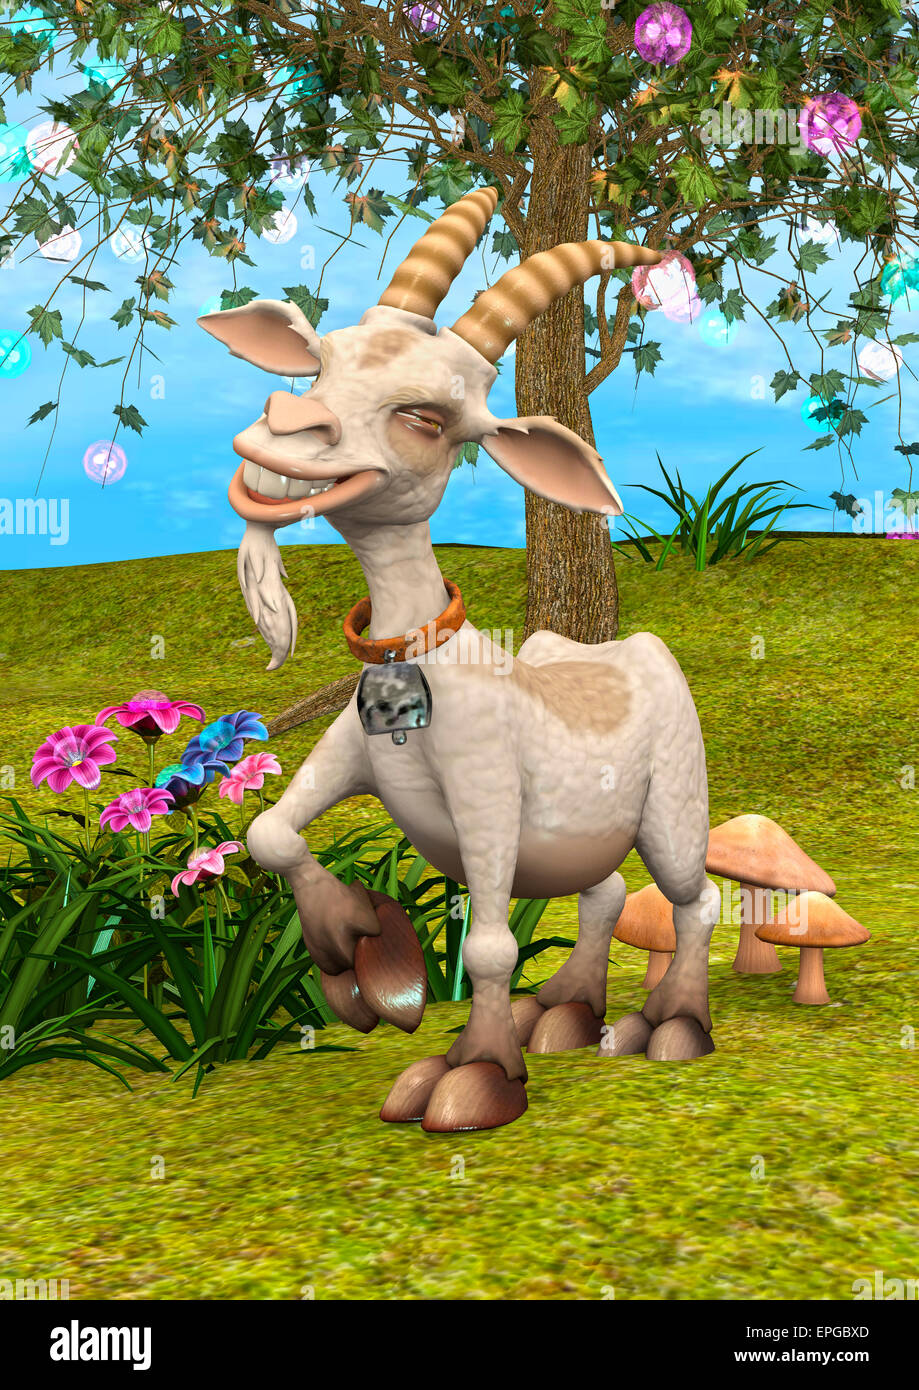 3d digital render of a happy cartoon goat on a fantasy for My garden 3d